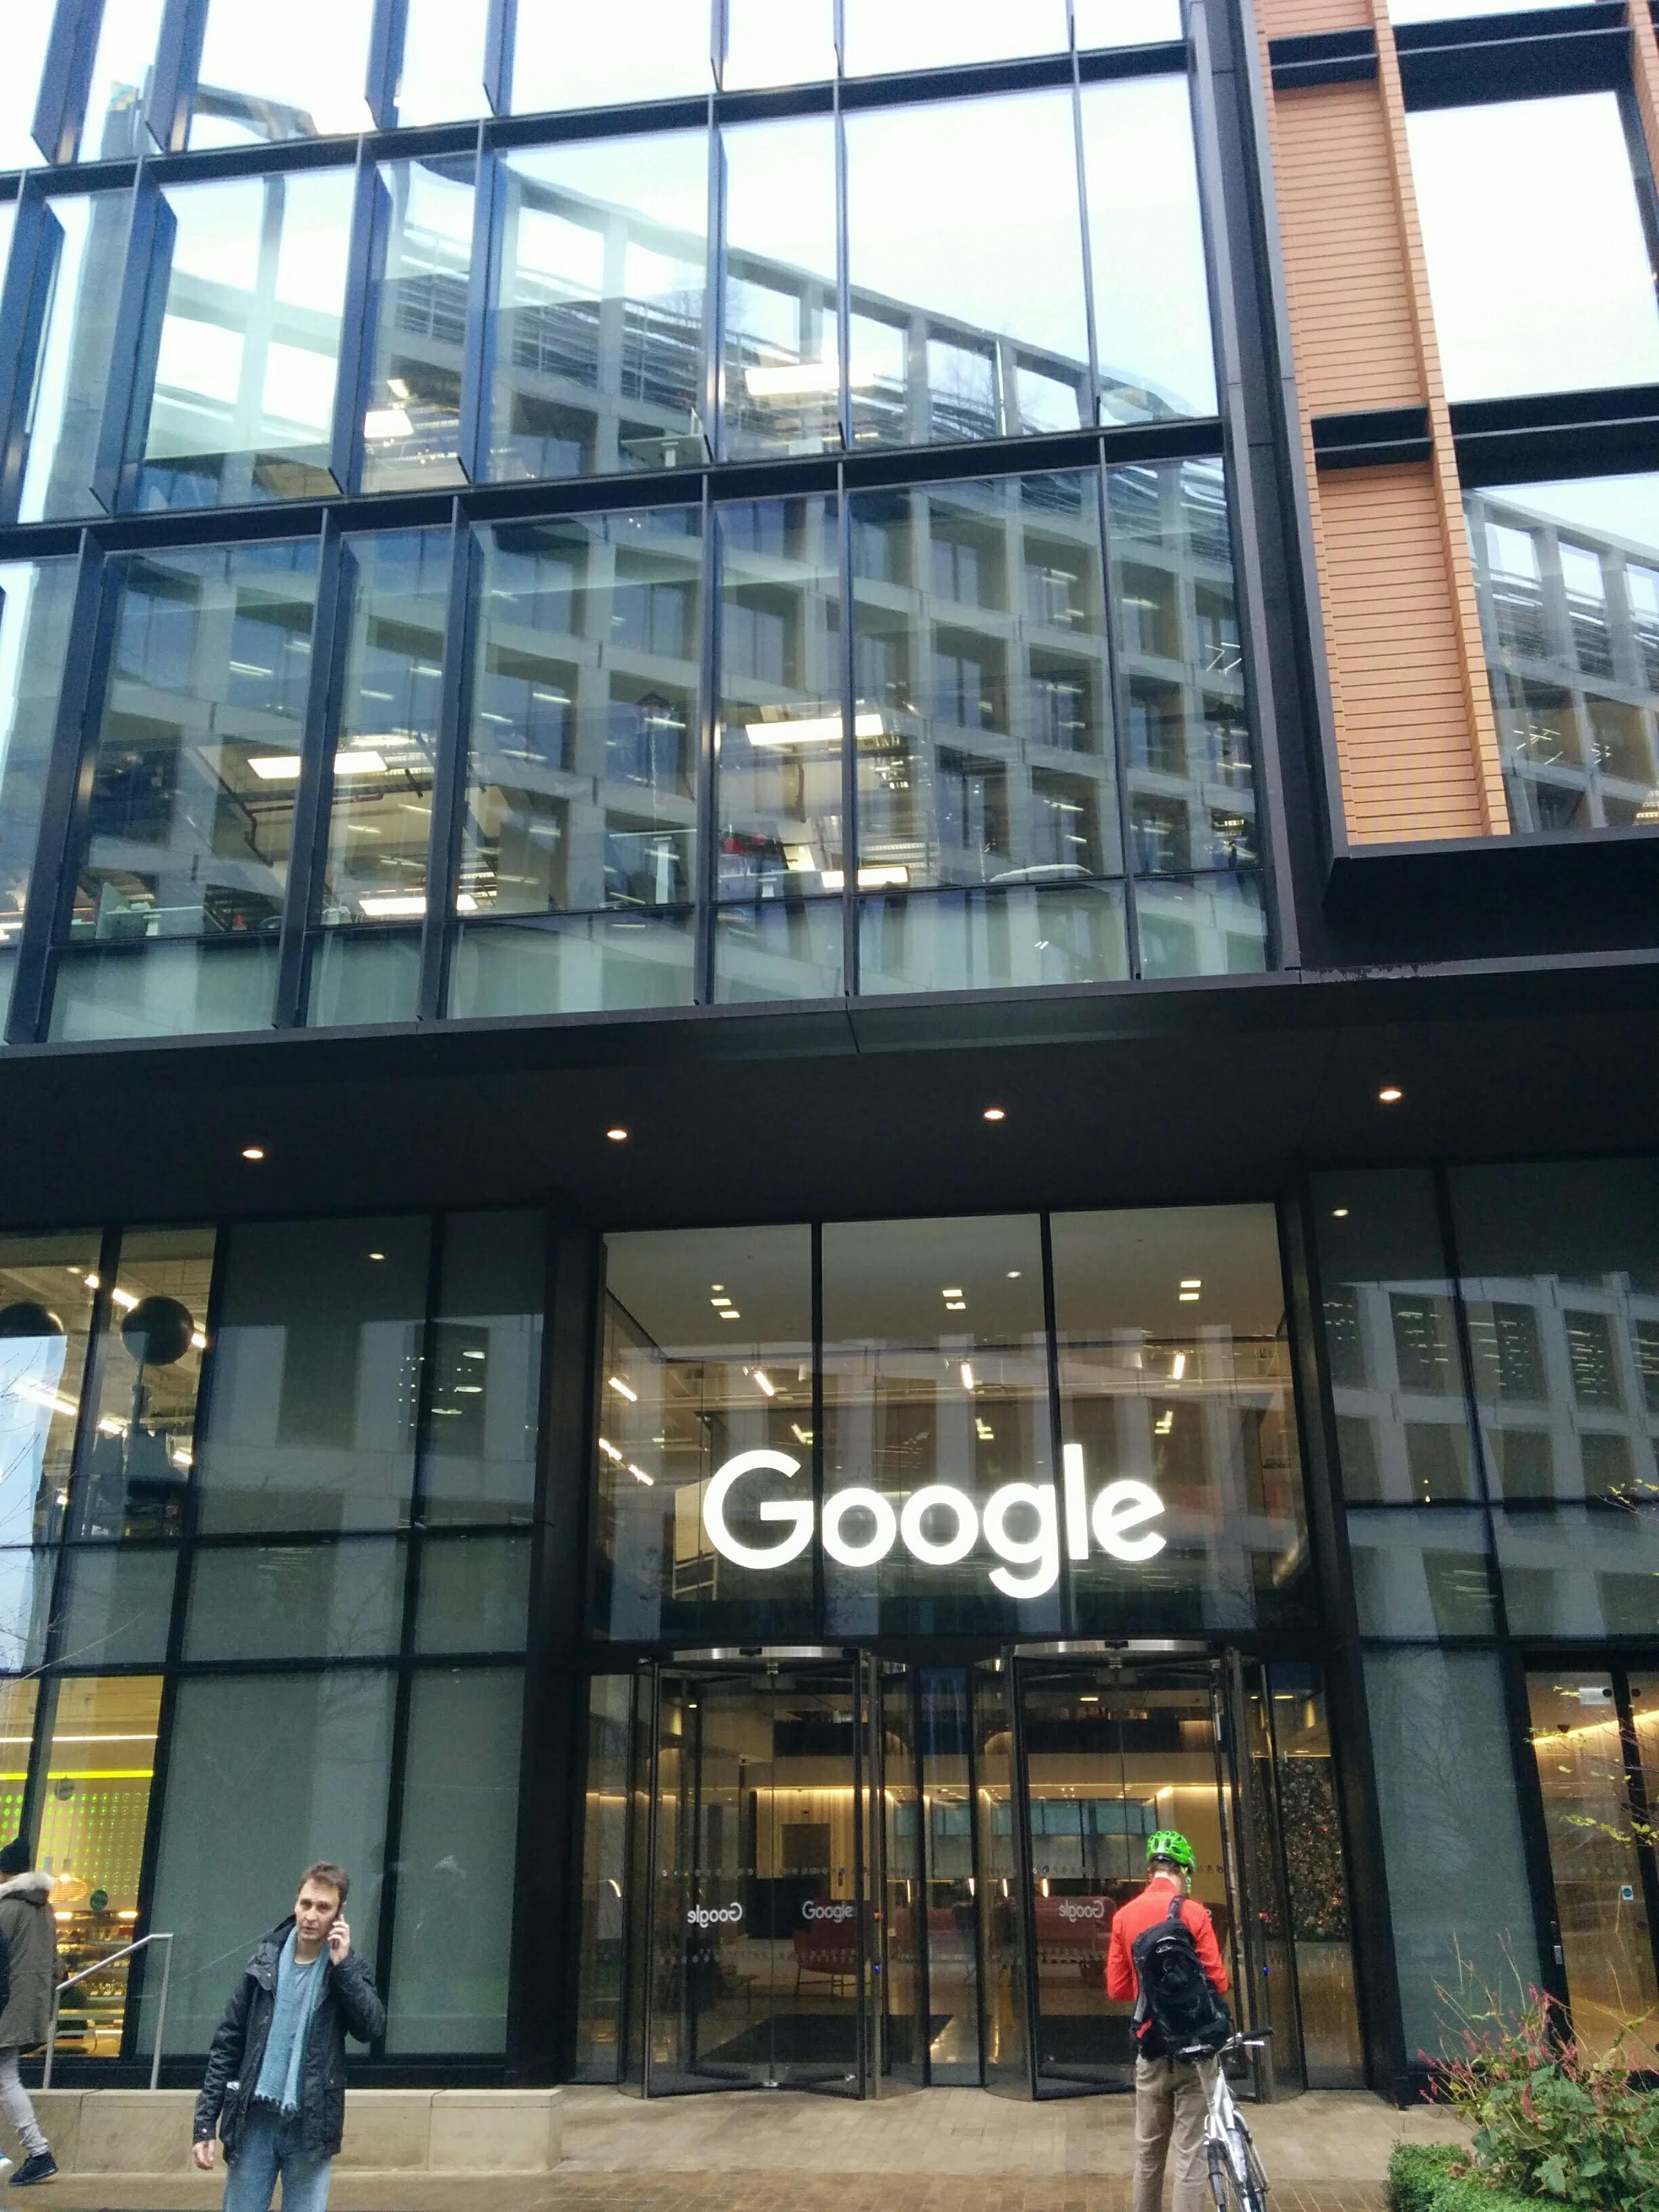 015 Google Deep Mind Headquarters In London2c 6 Pancras Square Deepmind Researchs Outstanding Research Papers Full